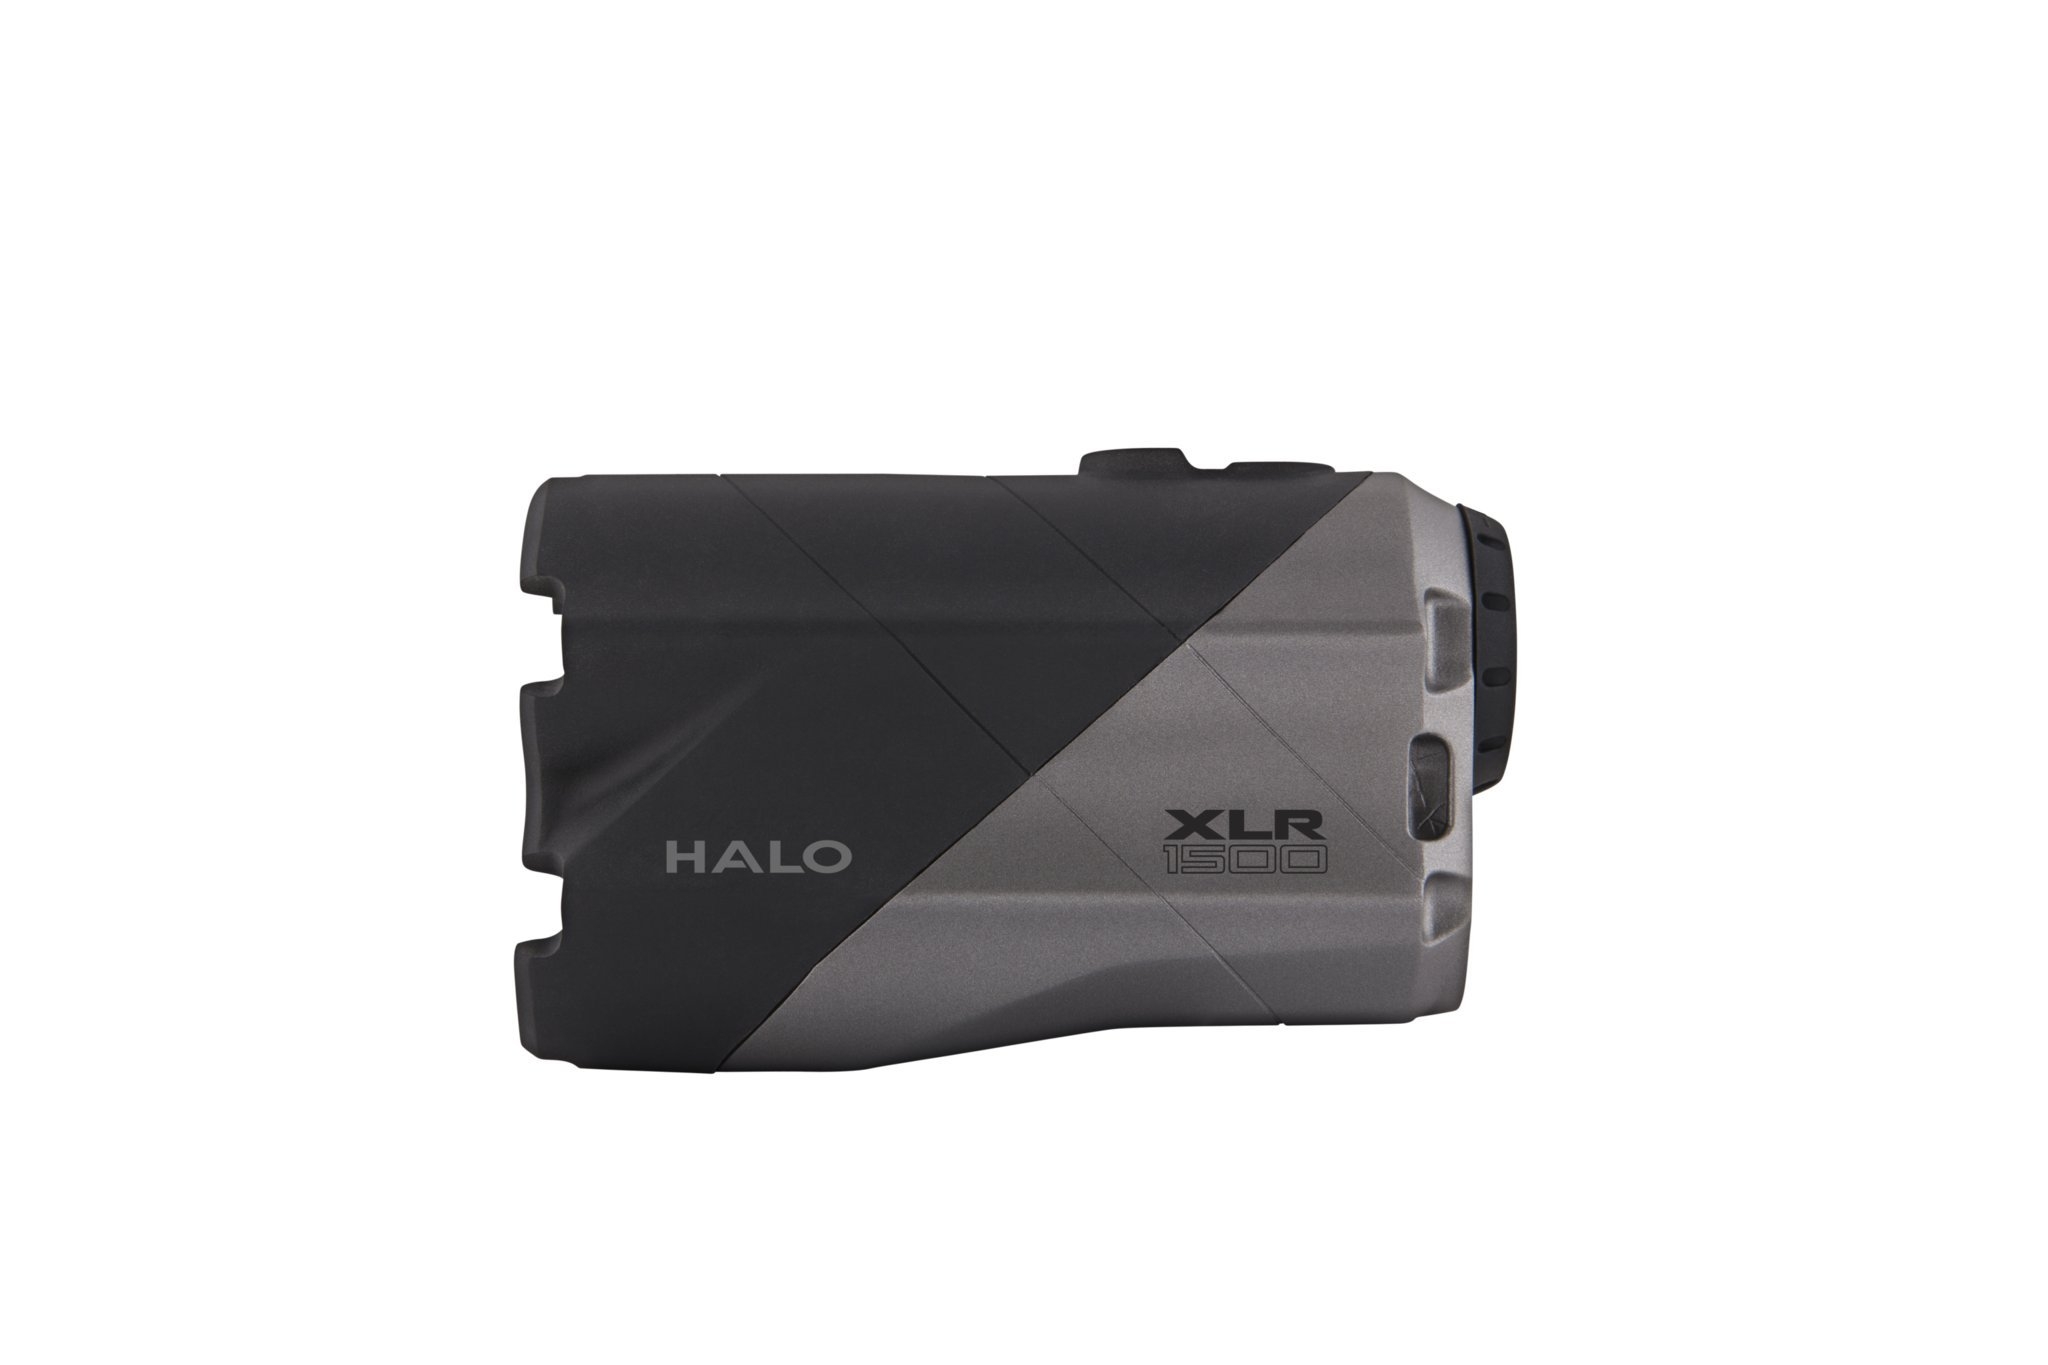 HALO XLR1500-8 Hunting Scopes Range Finders by HALO